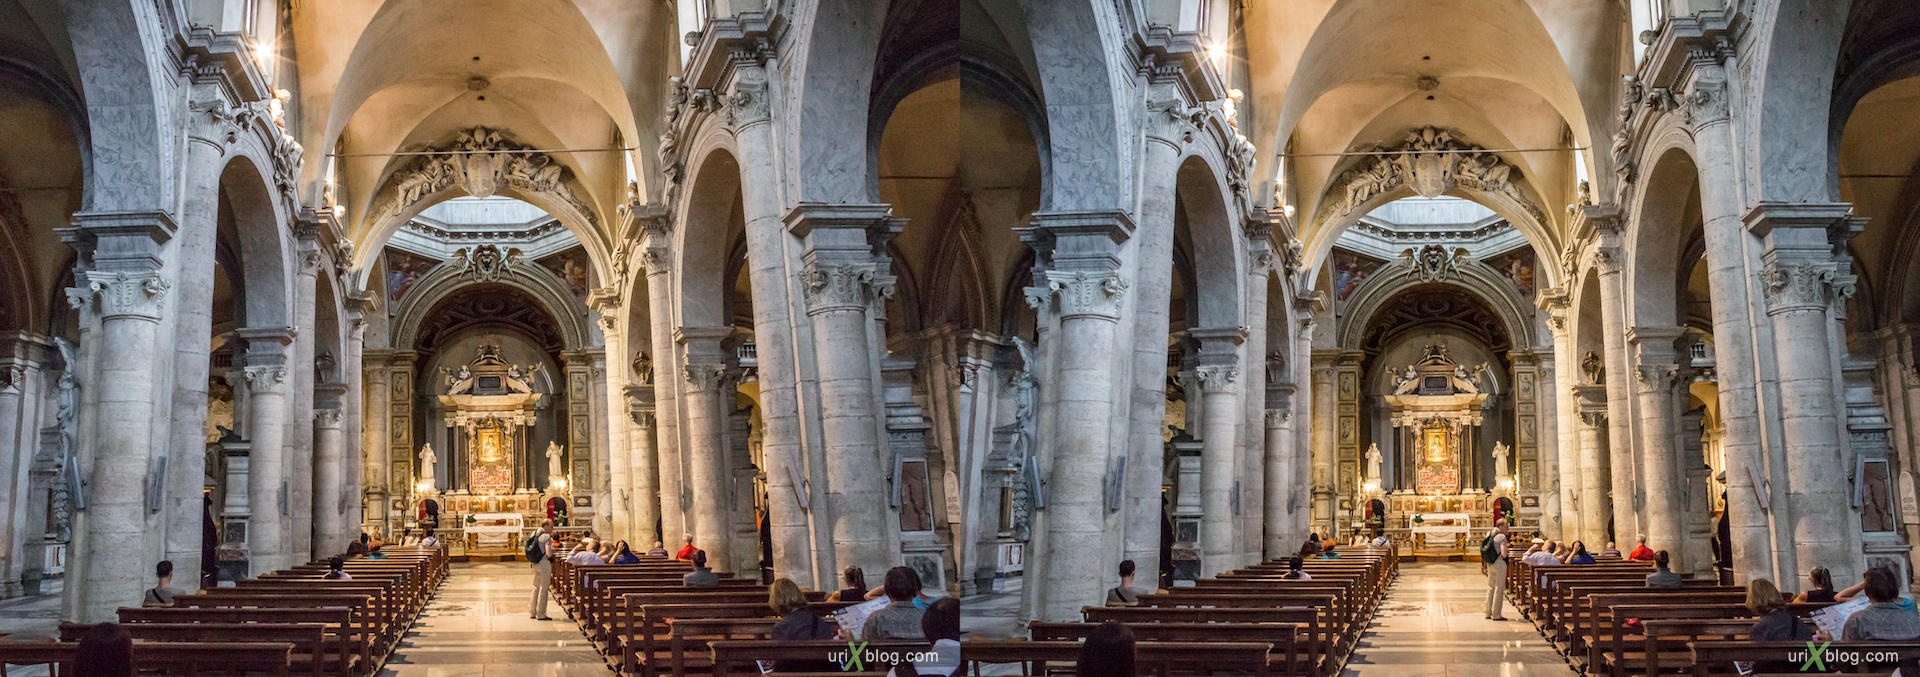 2012, church, basilica di Santa Maria del Popolo, Rome, Italy, cathedral, monastery, Christianity, Catholicism, 3D, stereo pair, cross-eyed, crossview, cross view stereo pair